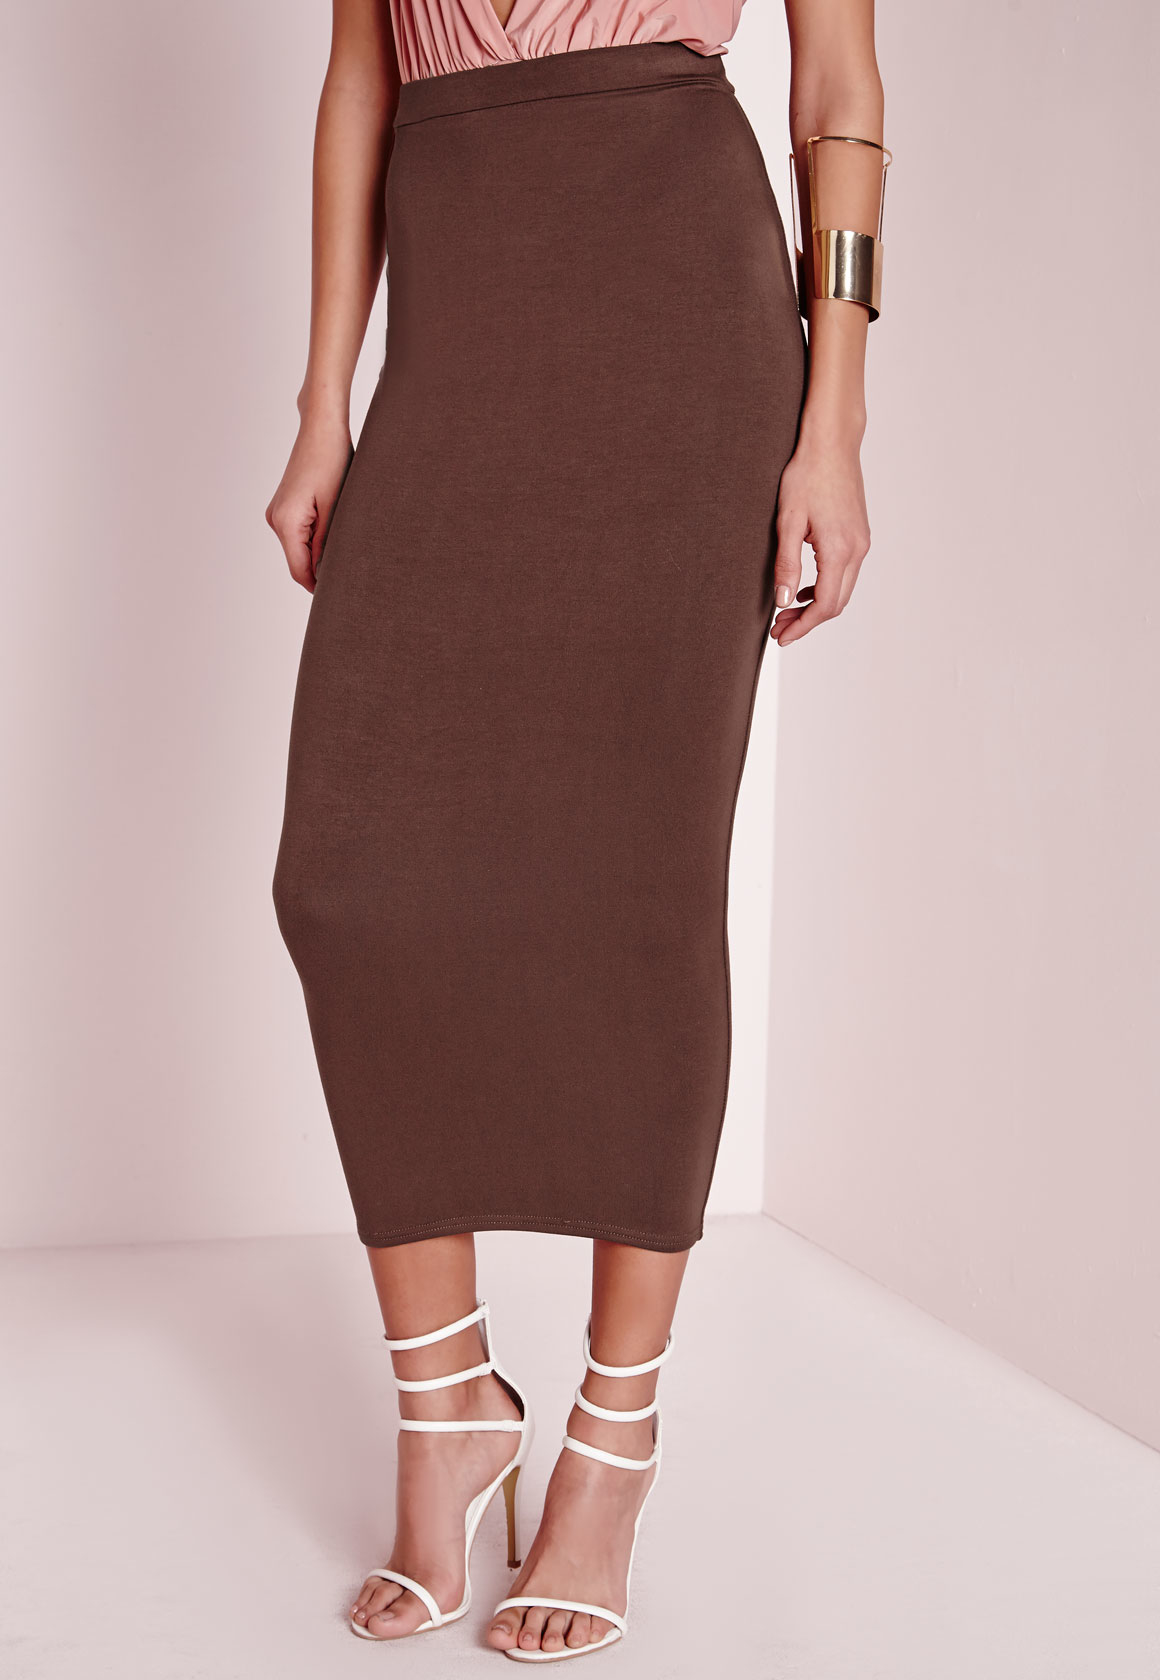 missguided longline jersey midi skirt chocolate brown in